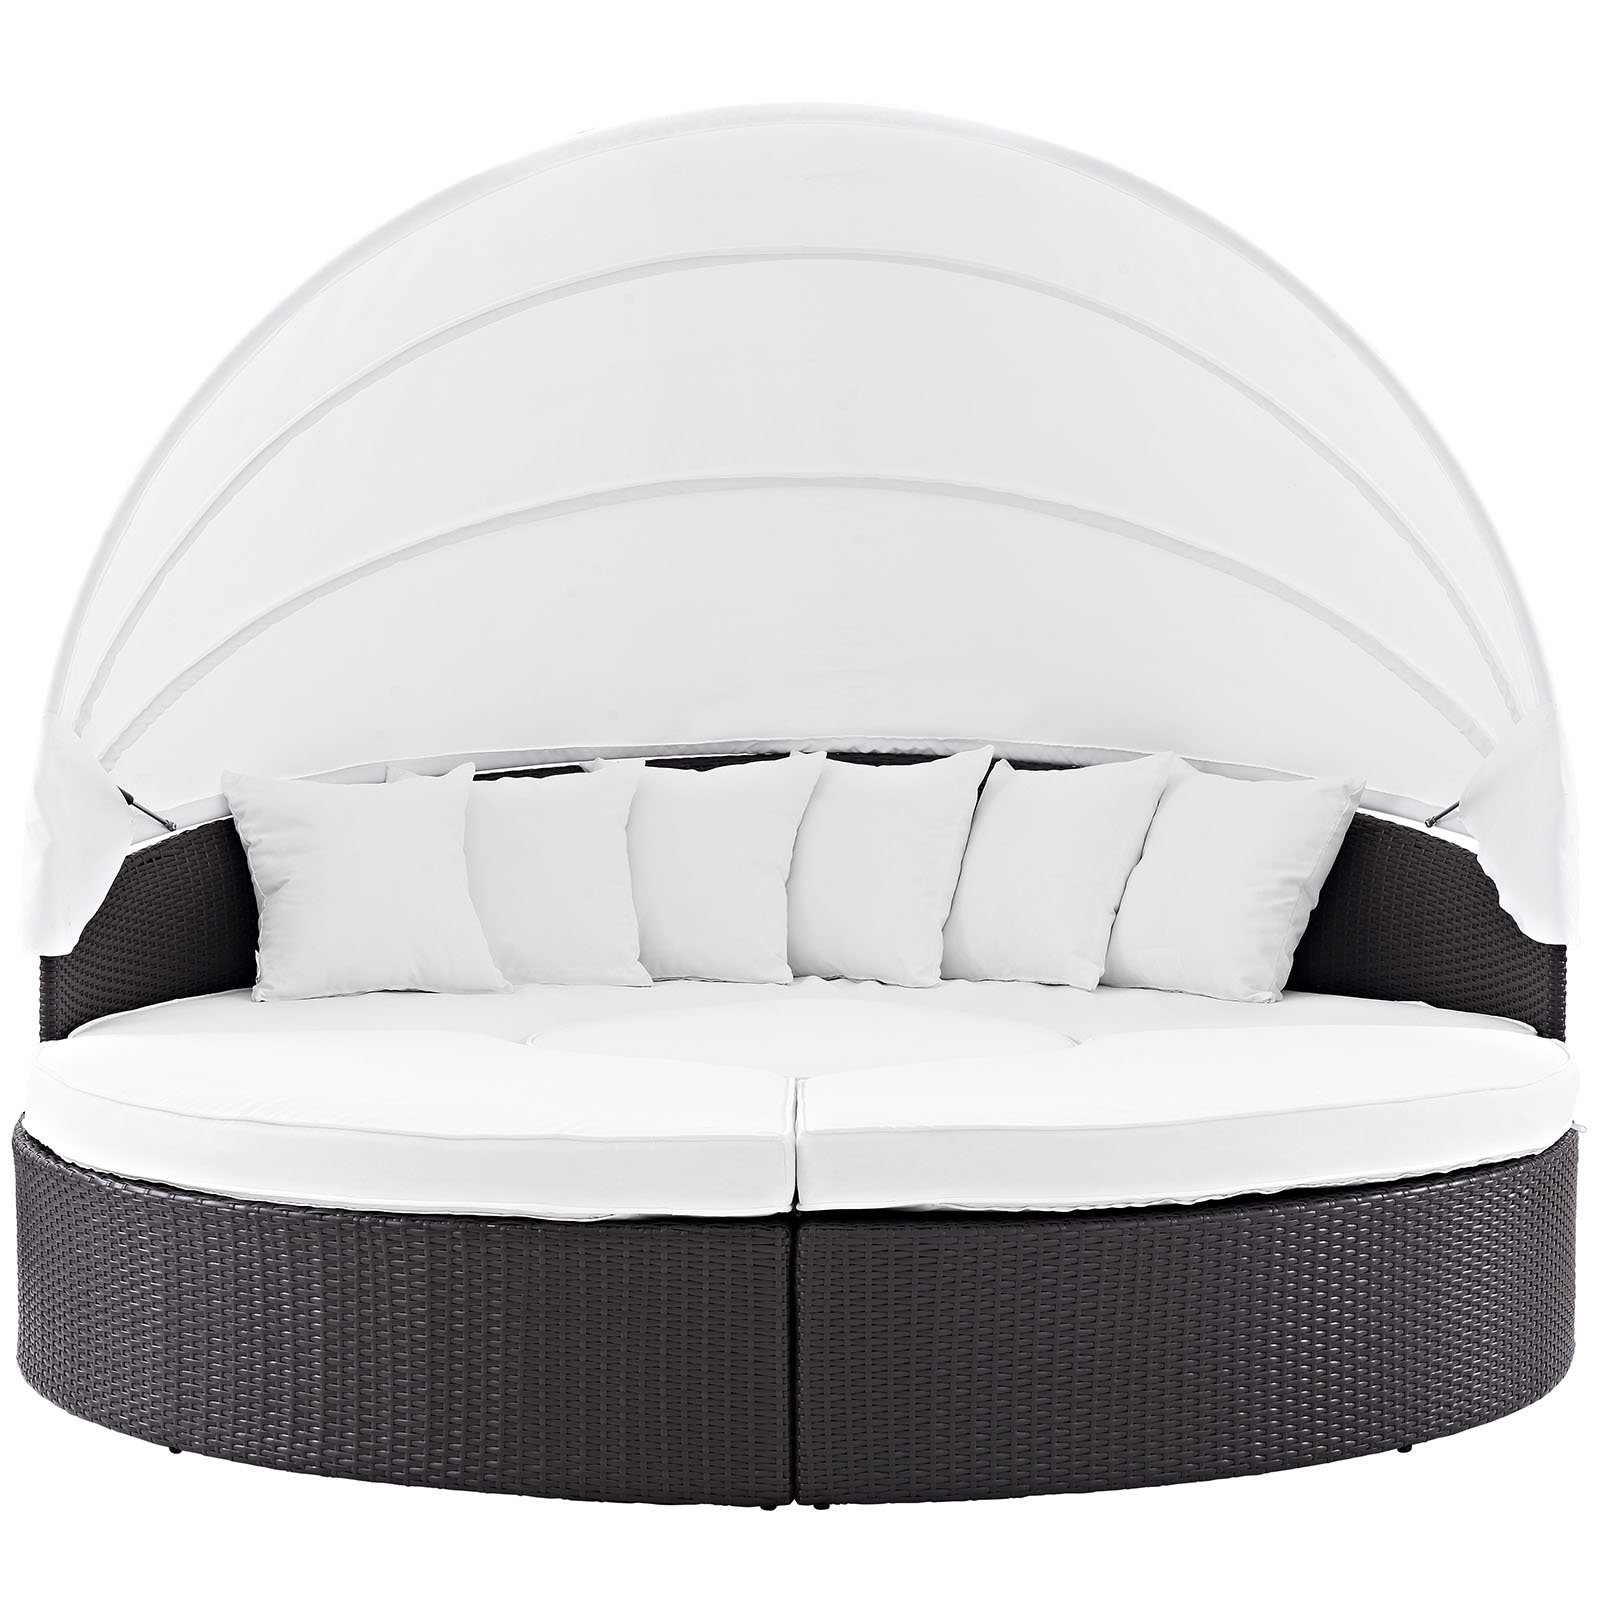 Most Popular Brentwood Patio Daybed With Cushions Regarding Brentwood Patio Daybeds With Cushions (View 13 of 25)